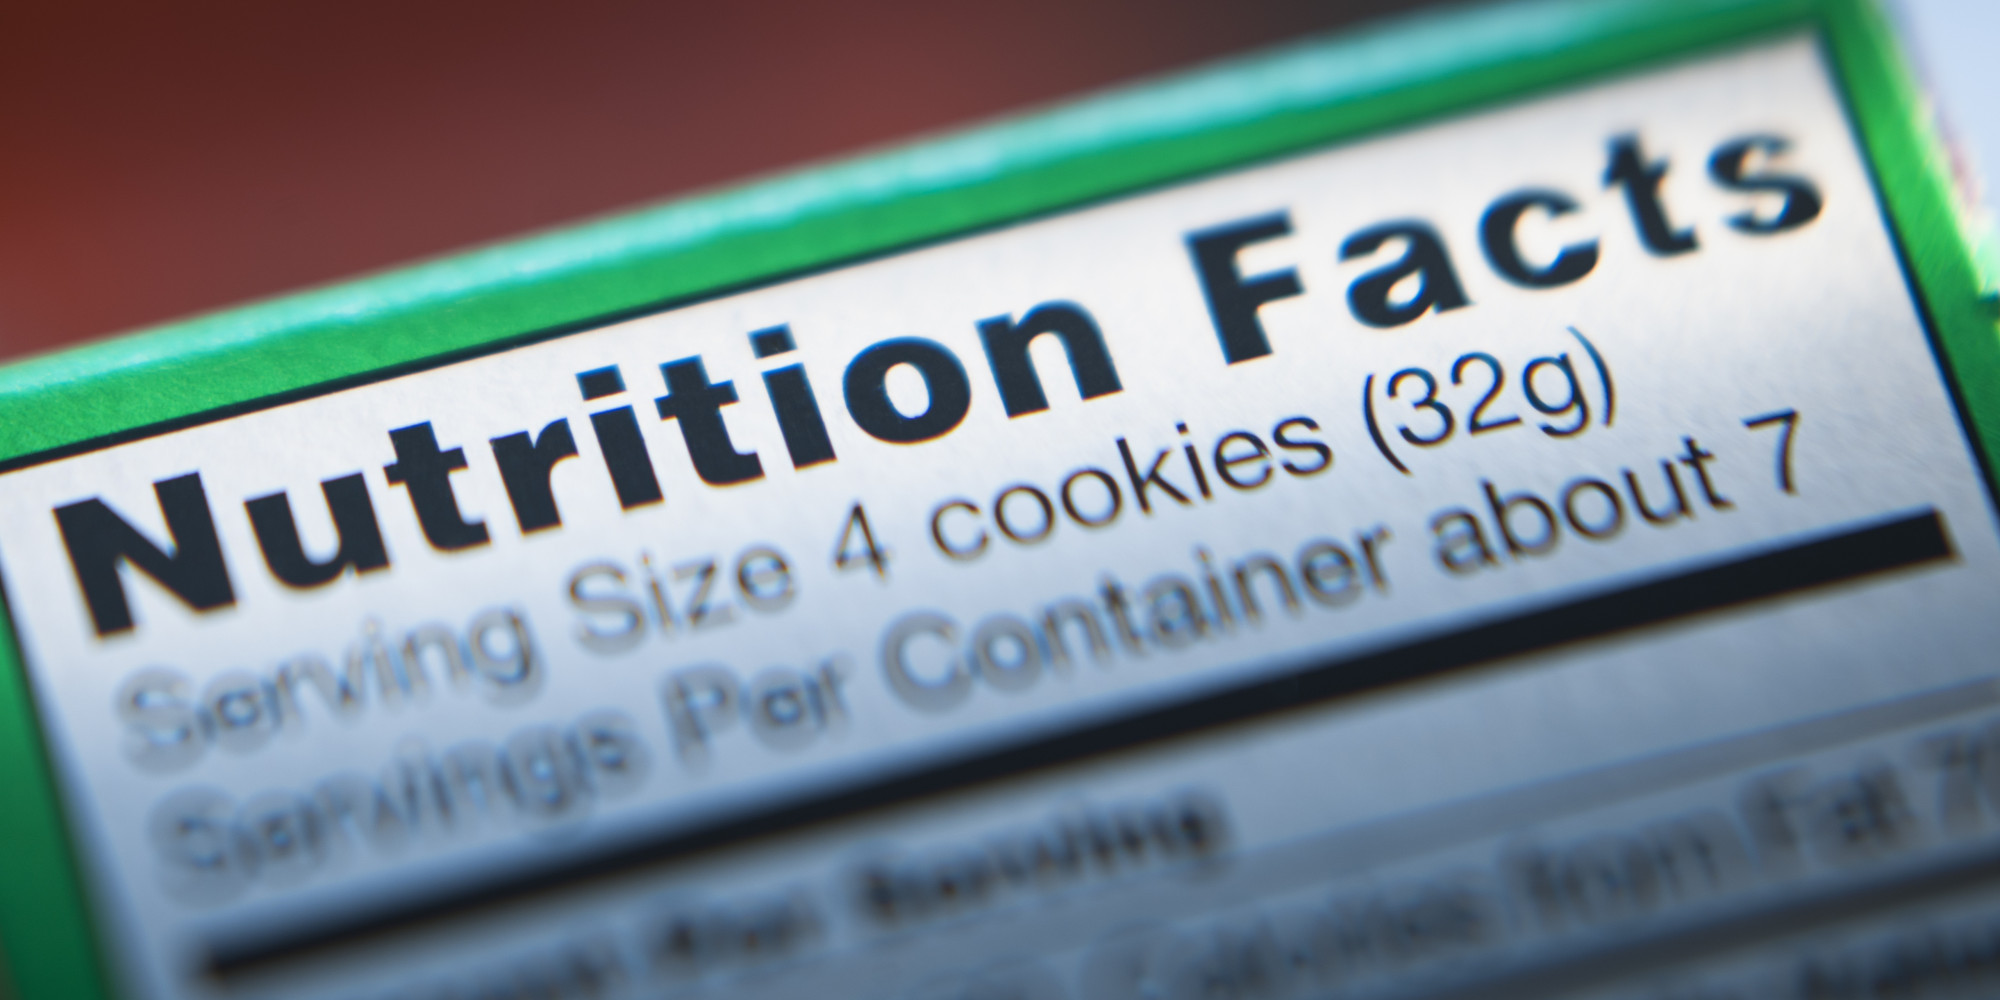 misleading food labels essay Truth behind 5 misleading food labels food shopping is more complicated than you think every aisle contains dozens of confusing labels slapped onto nearly every type of product.